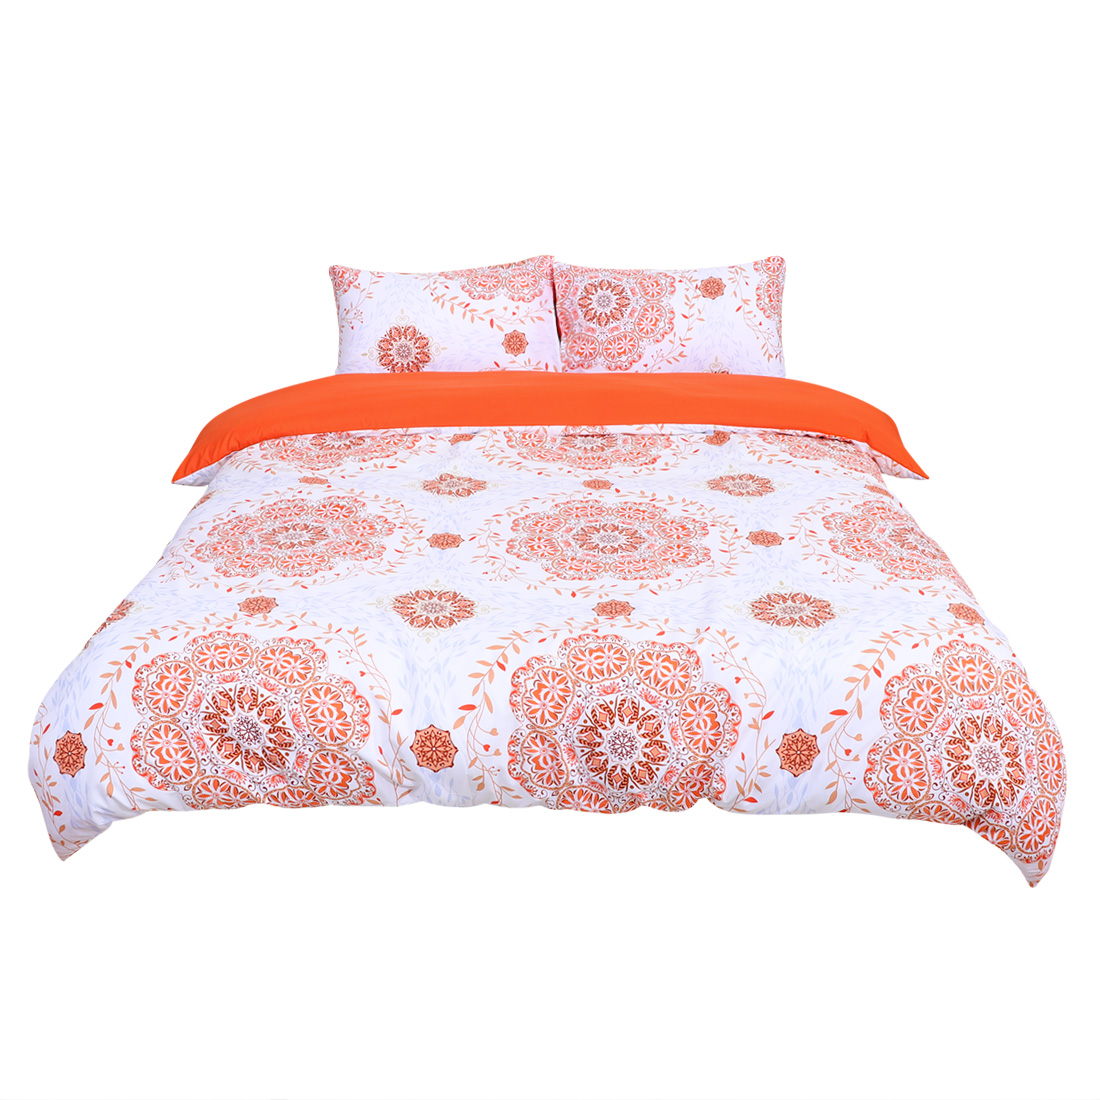 King All-season Duvet Cover Sets Bohemian Orange, with 2 Pillow Cases